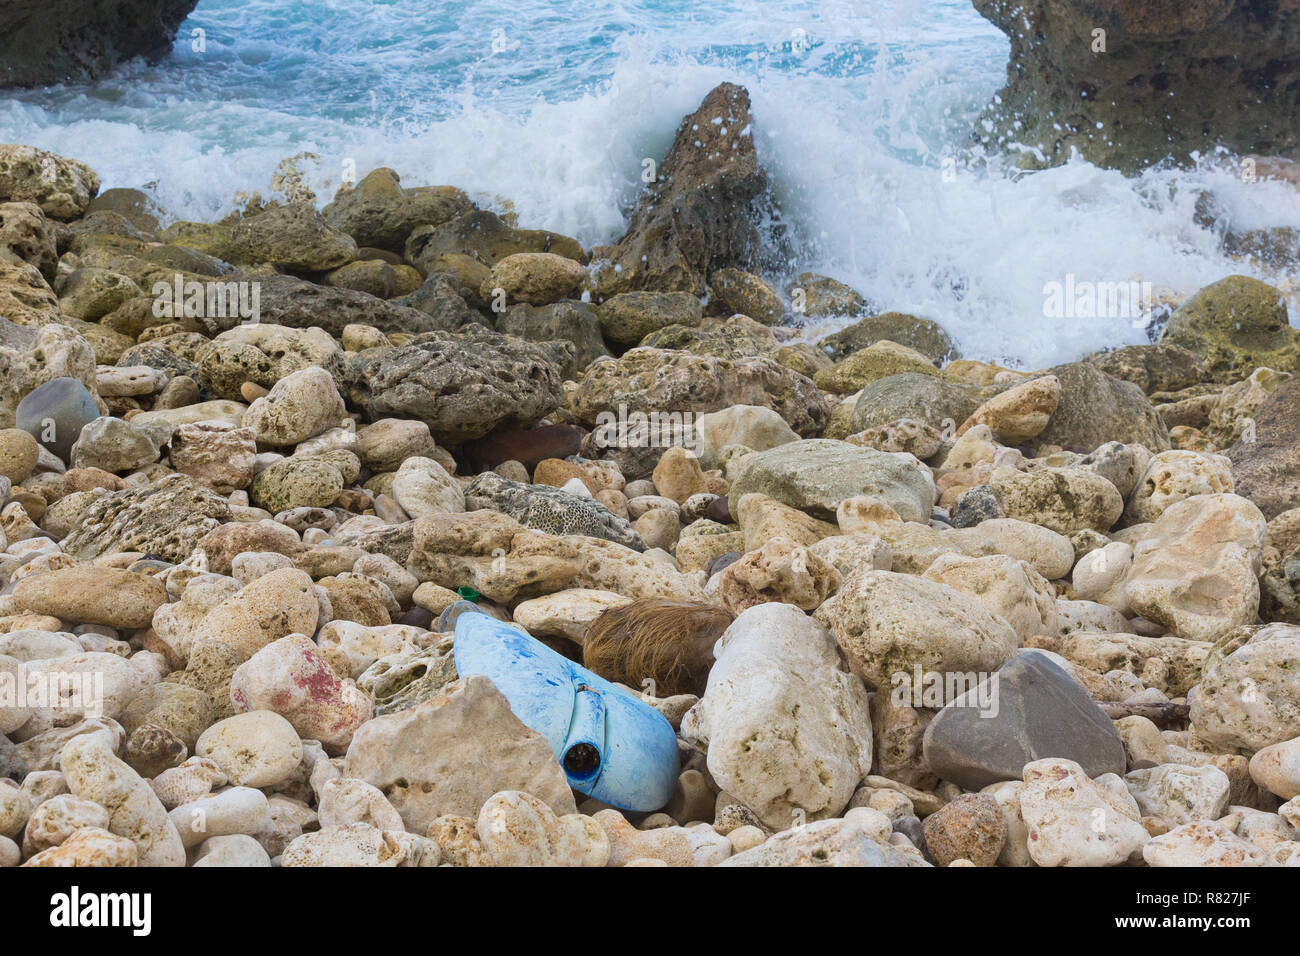 Plastic waste washed in from the sea contaminates rocks and beaches in the Caribbean - Stock Image